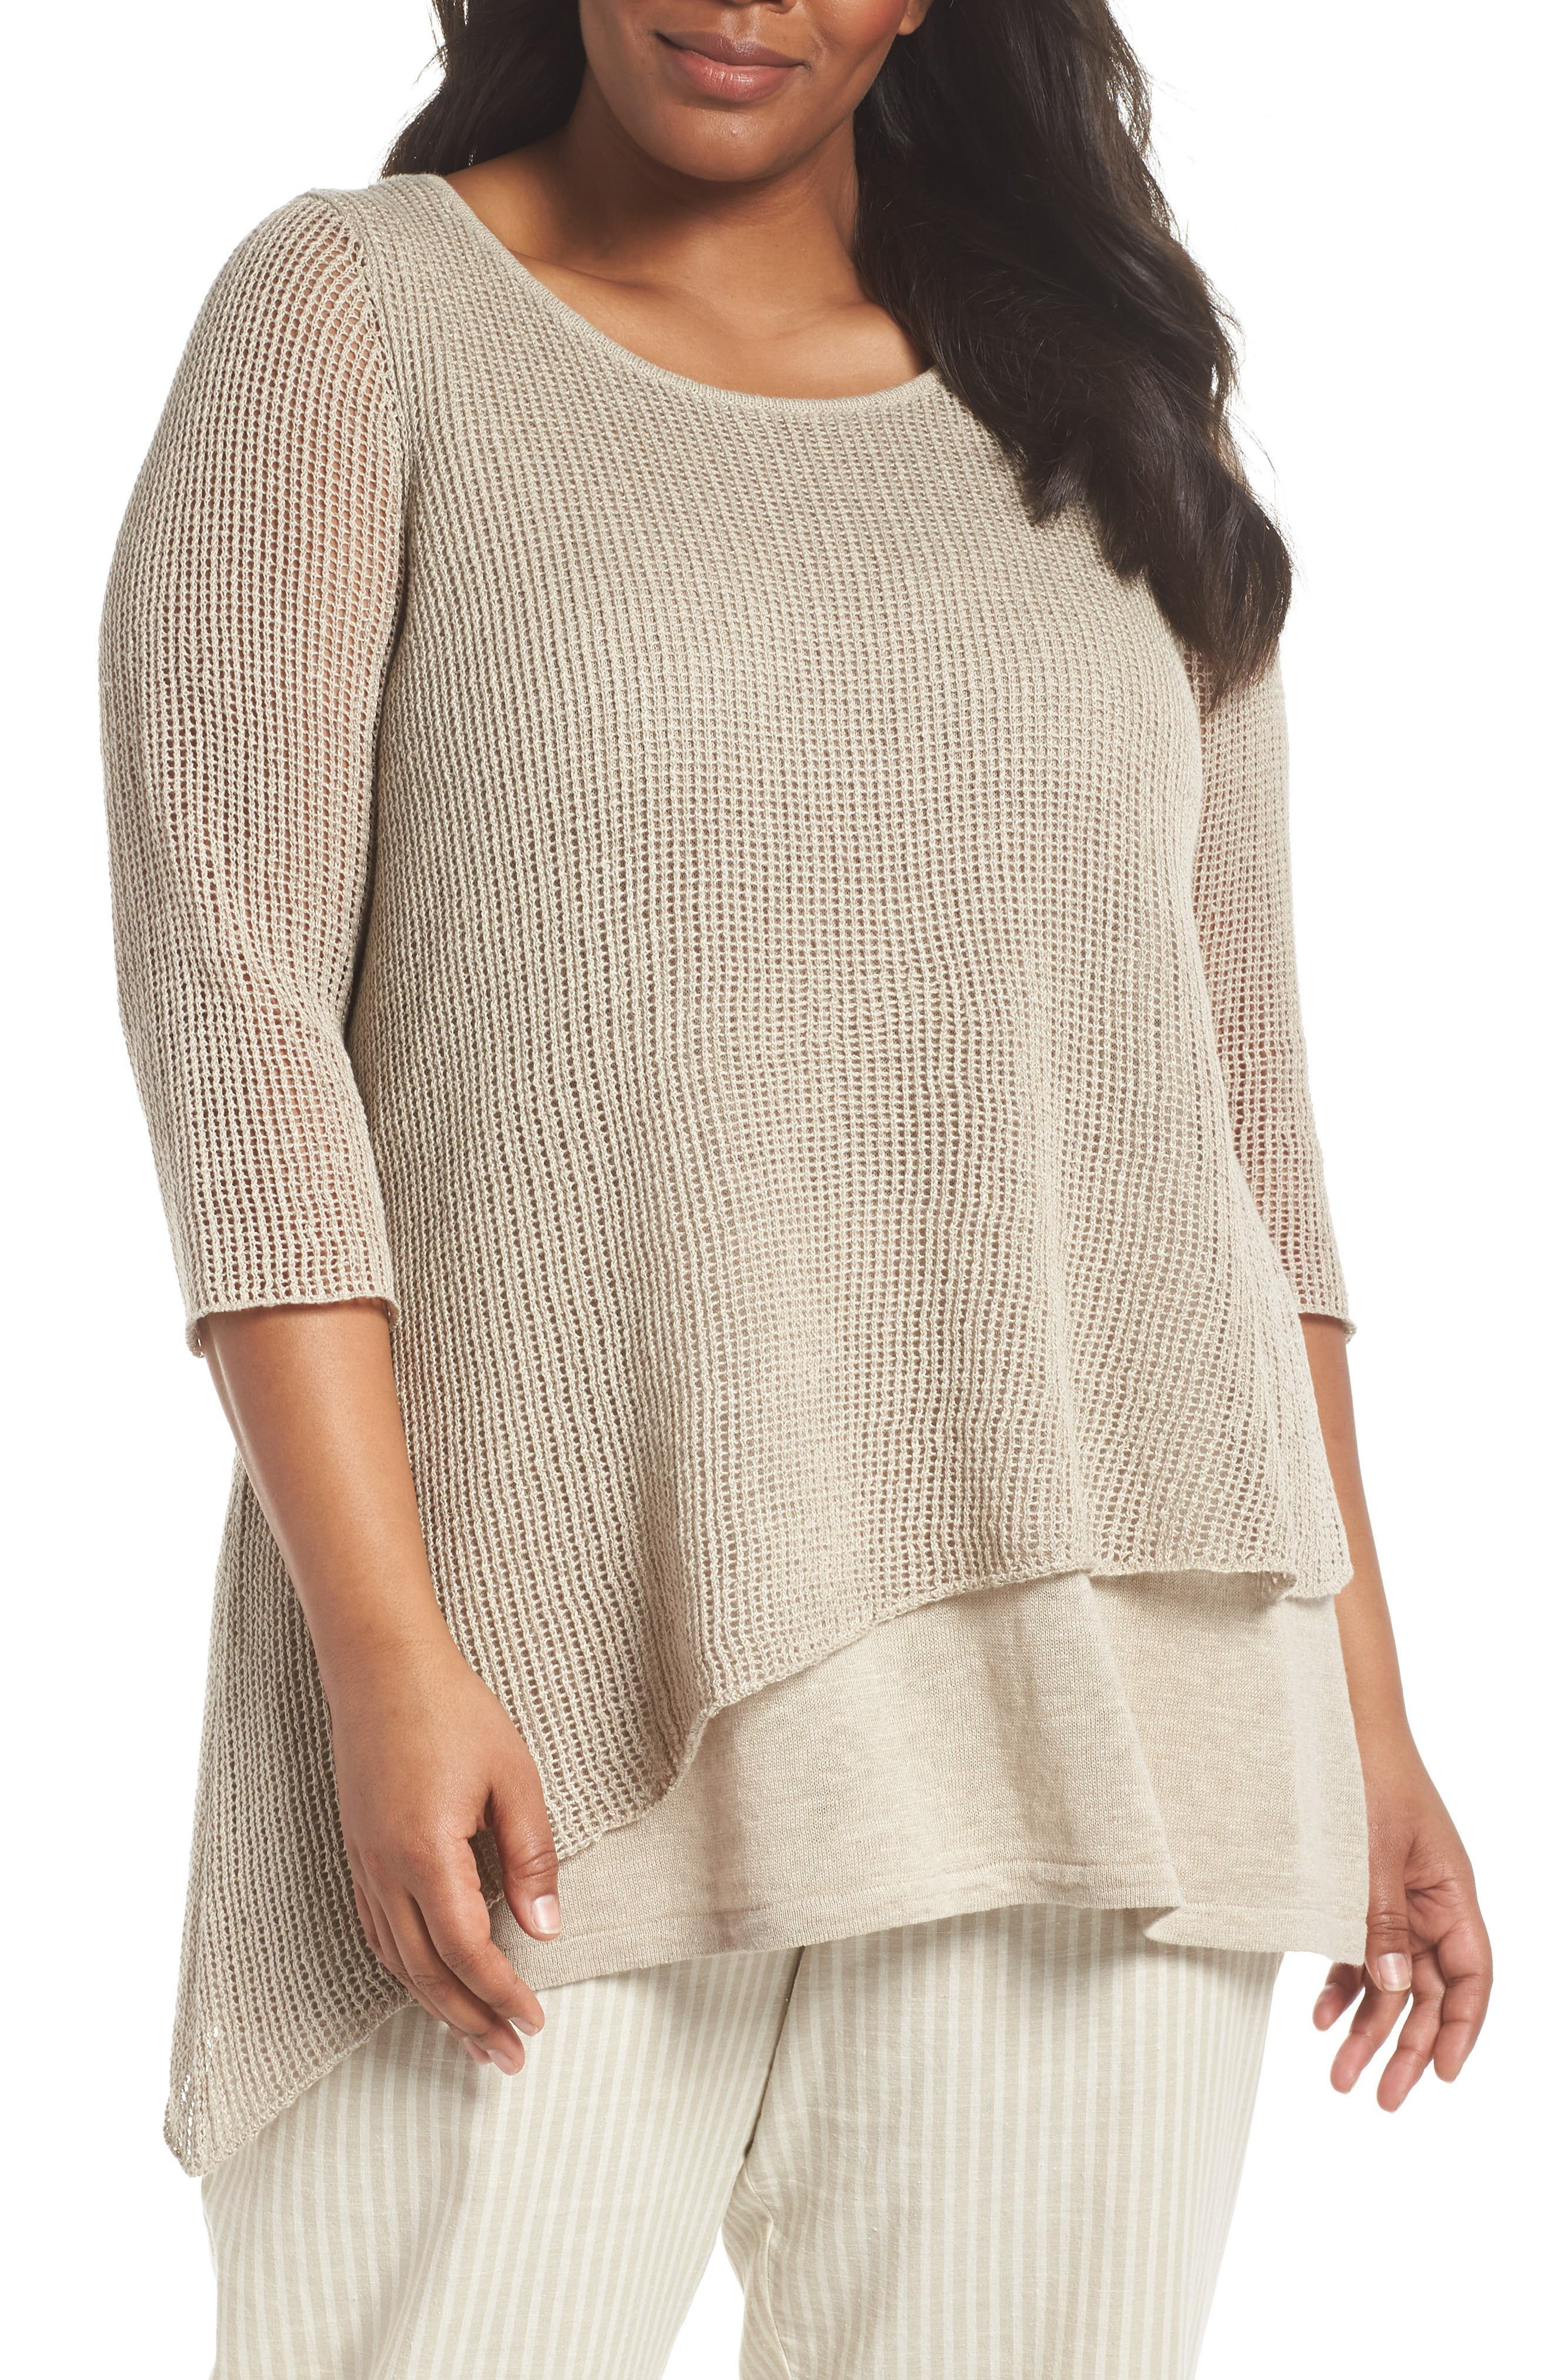 Layered Organic Linen Tunic Sweater,                             Main thumbnail 1, color,                             251